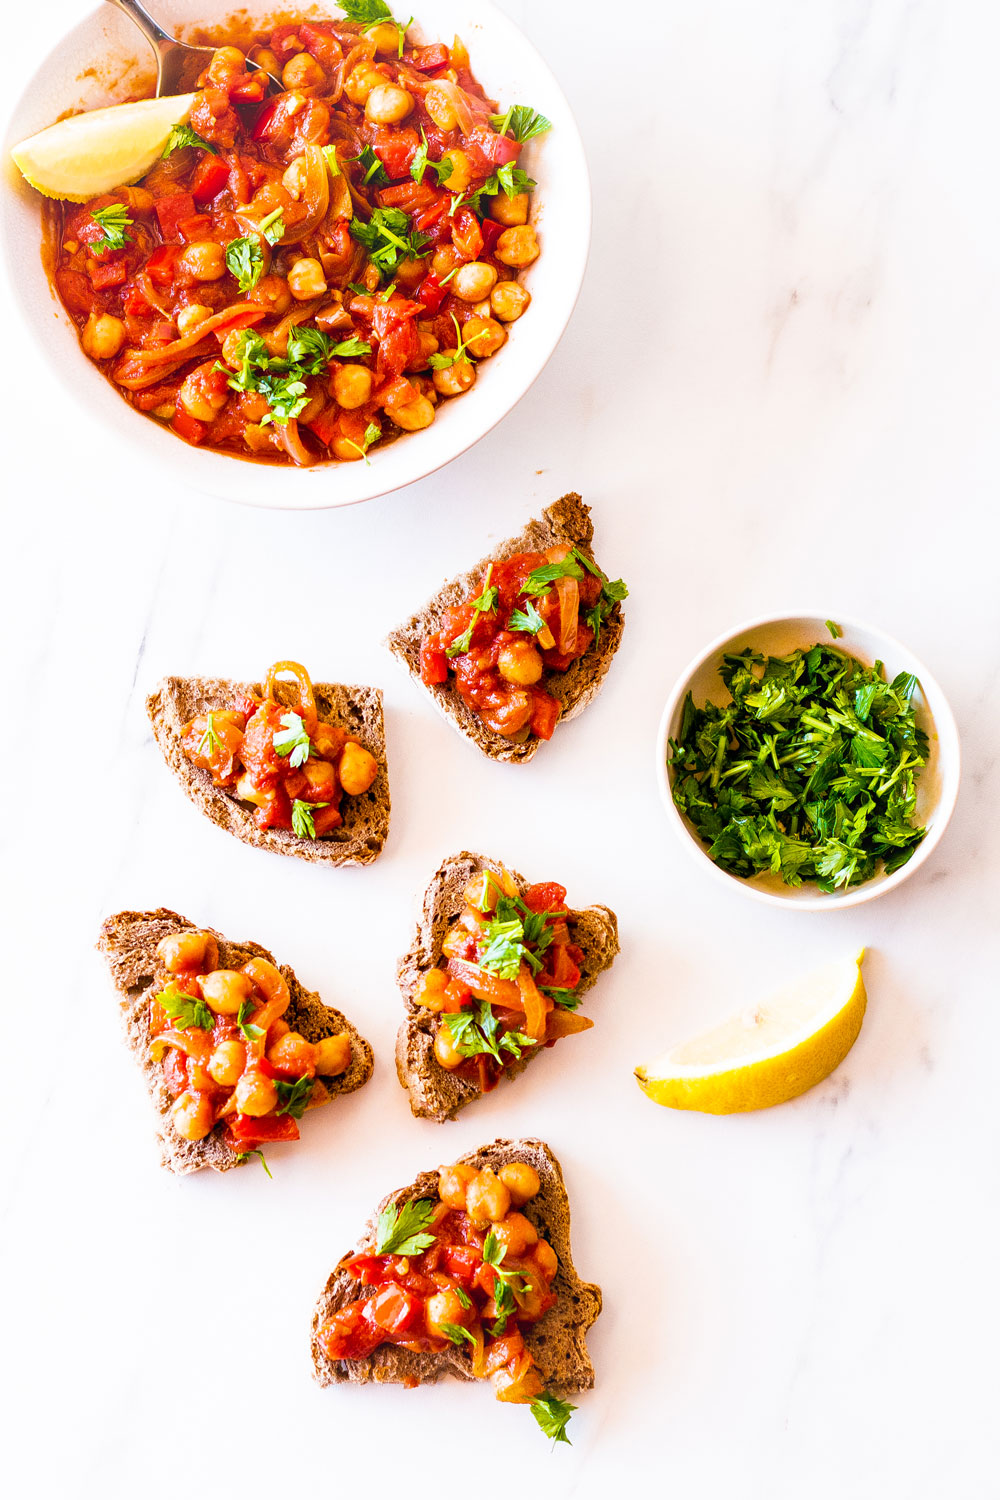 This Spicy Chickpea, Tomato & Bell Pepper Toast is a crunchier alternative to the quintessential hummus toast. It's tasty, comforting, easy to eat on the couch, and perfect to snack on! https://www.spotebi.com/recipes/spicy-chickpea-tomato-bell-pepper-toast/